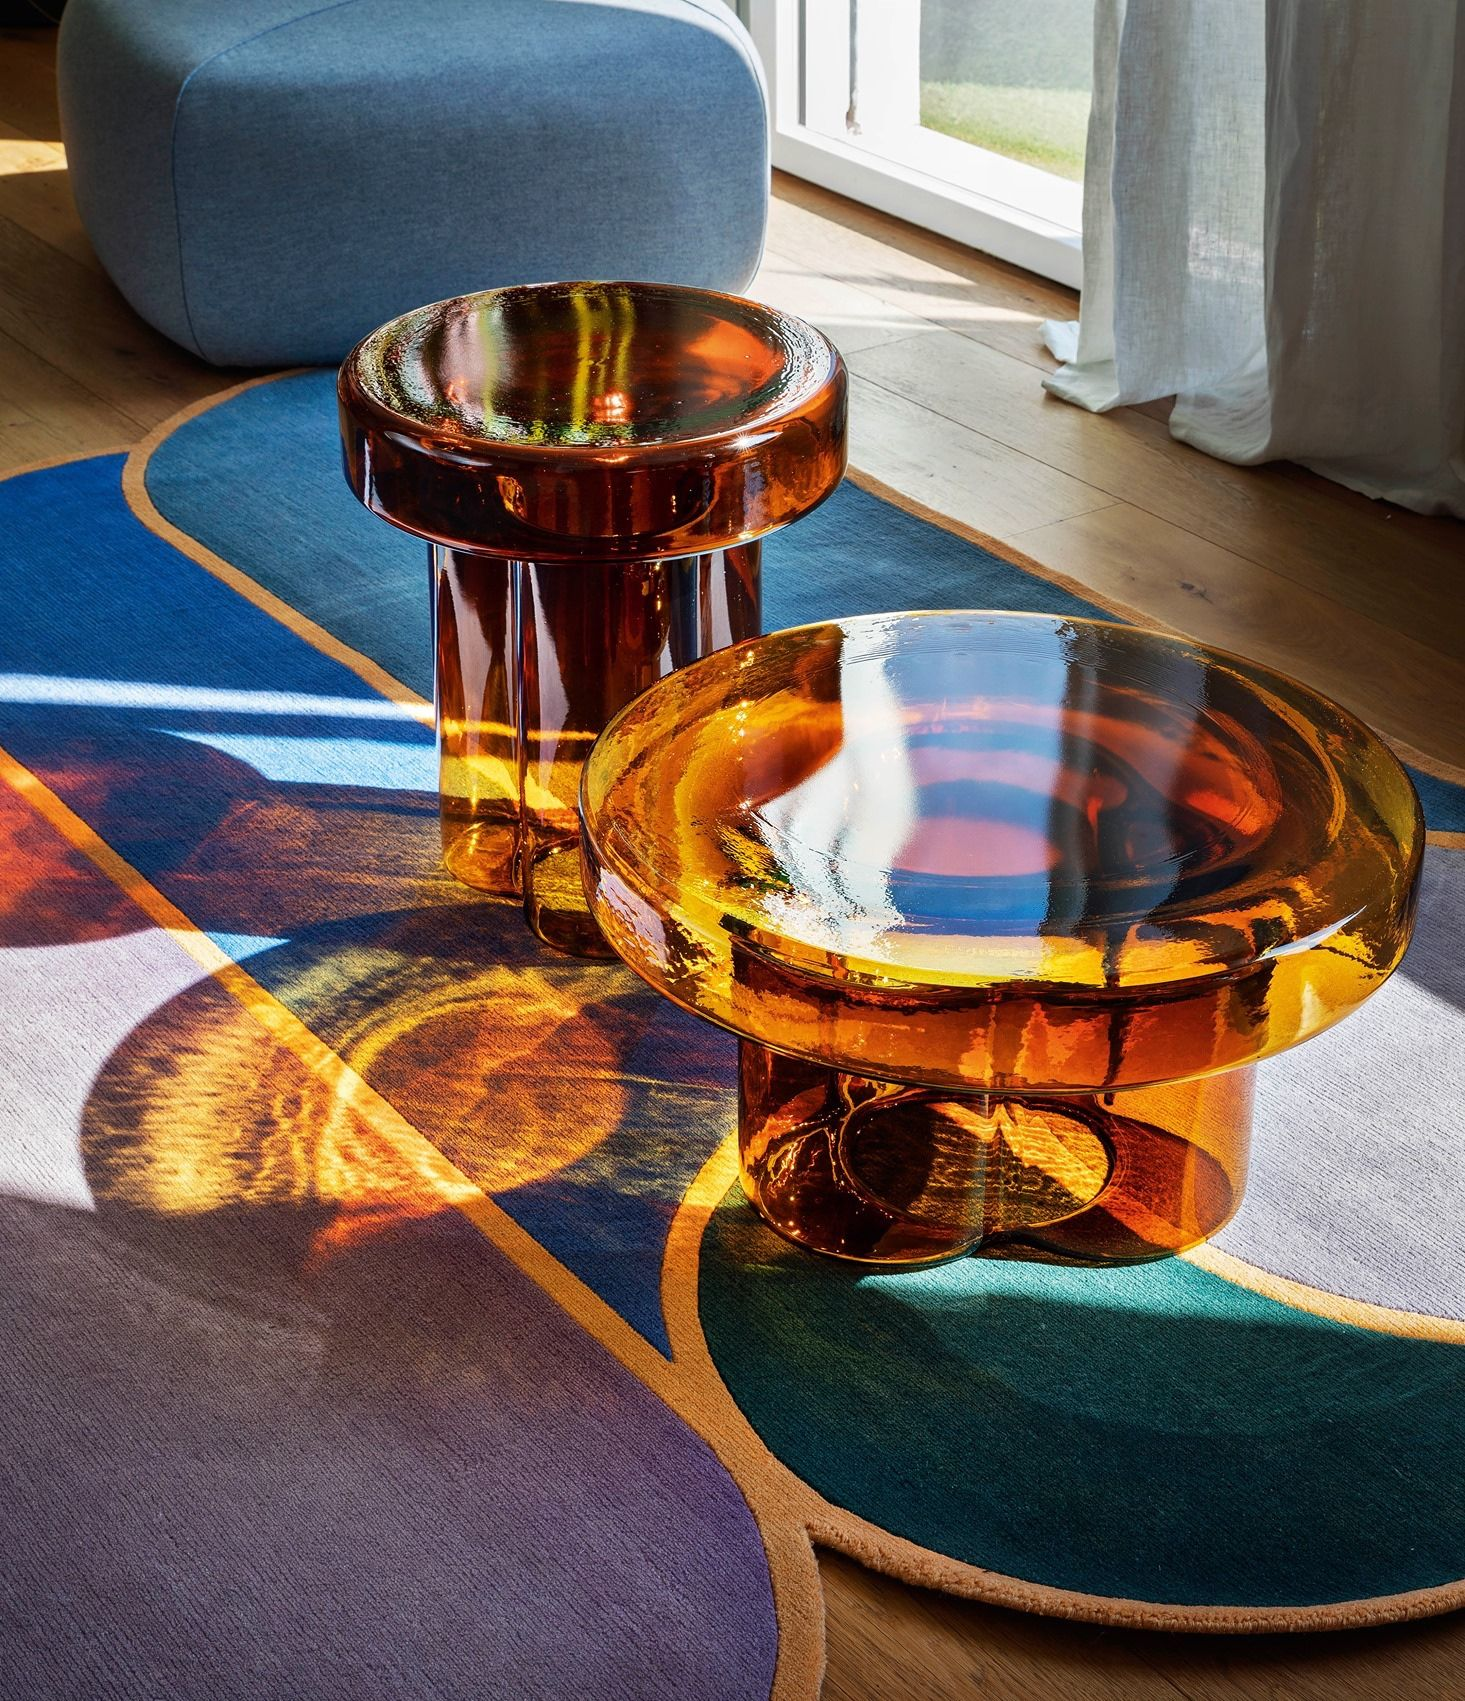 Designer Of The Day Yiannis Ghikas Surface In 2021 Glass Coffee Table Coffee Table Glass Table [ 1701 x 1465 Pixel ]